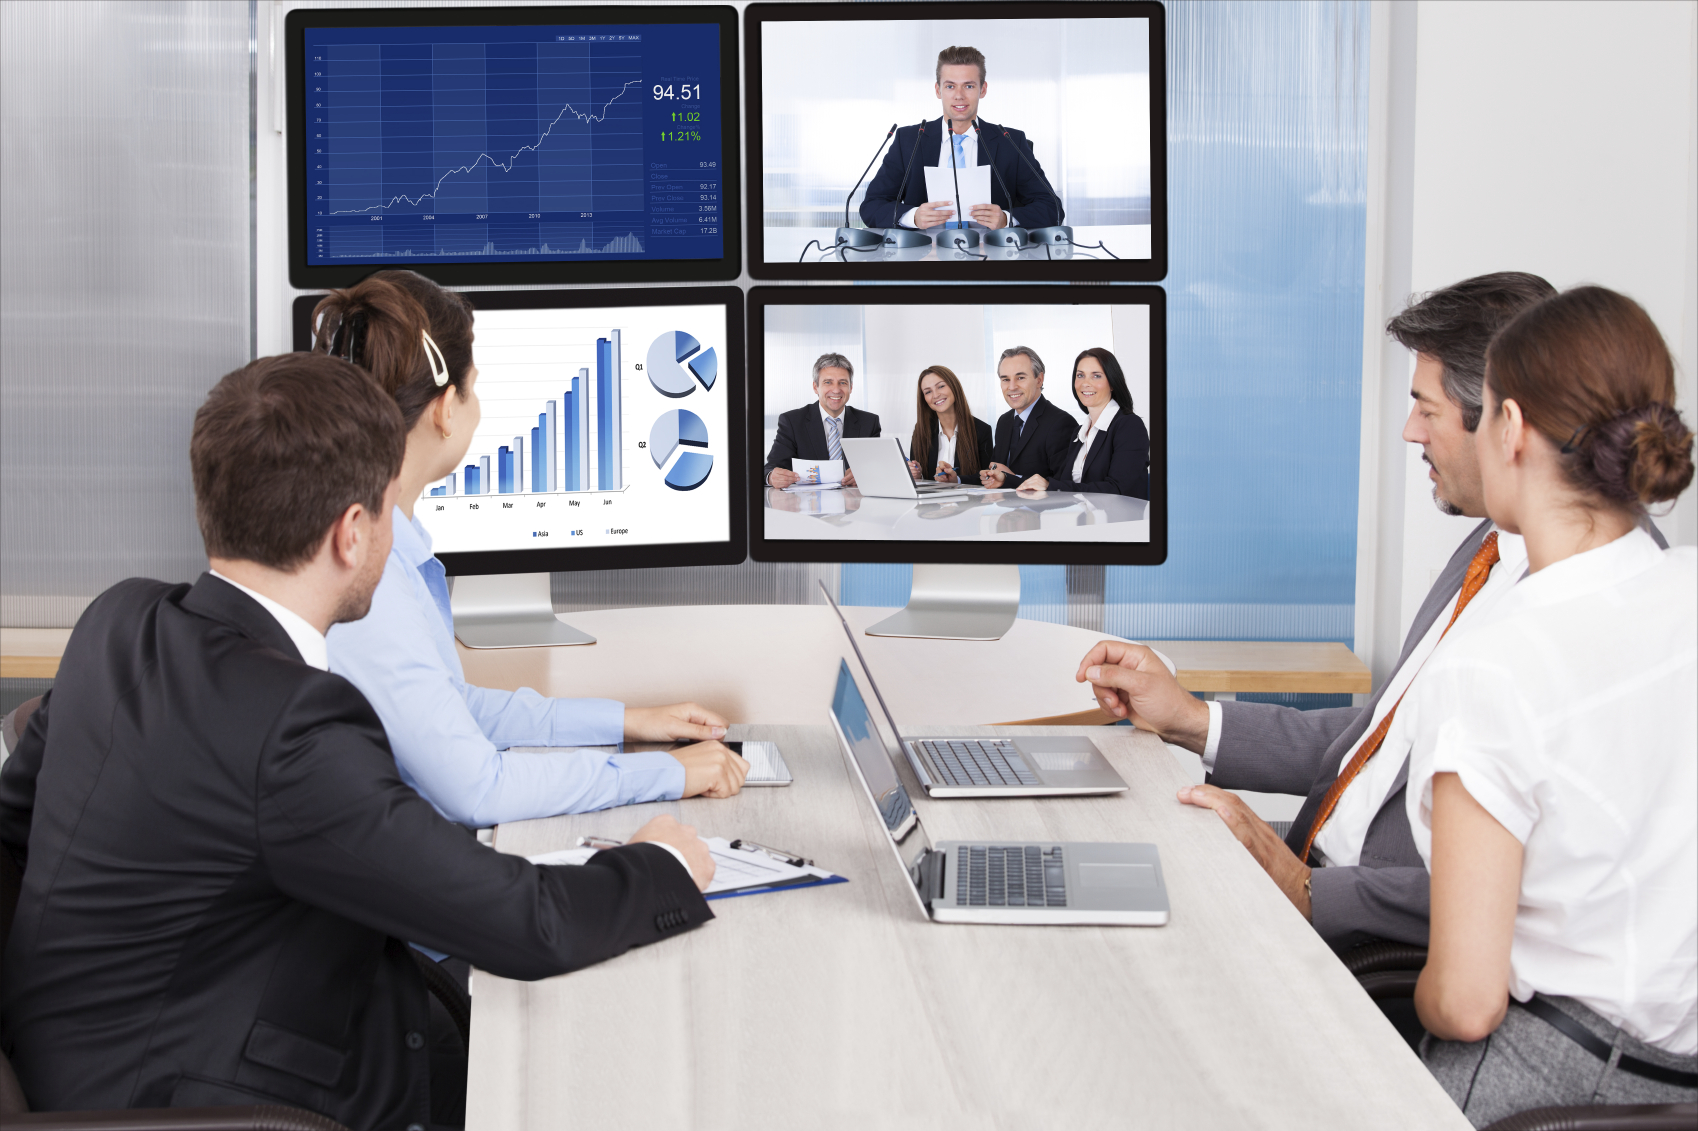 Turnkey V1 VoIP services feature online meetings for businesses